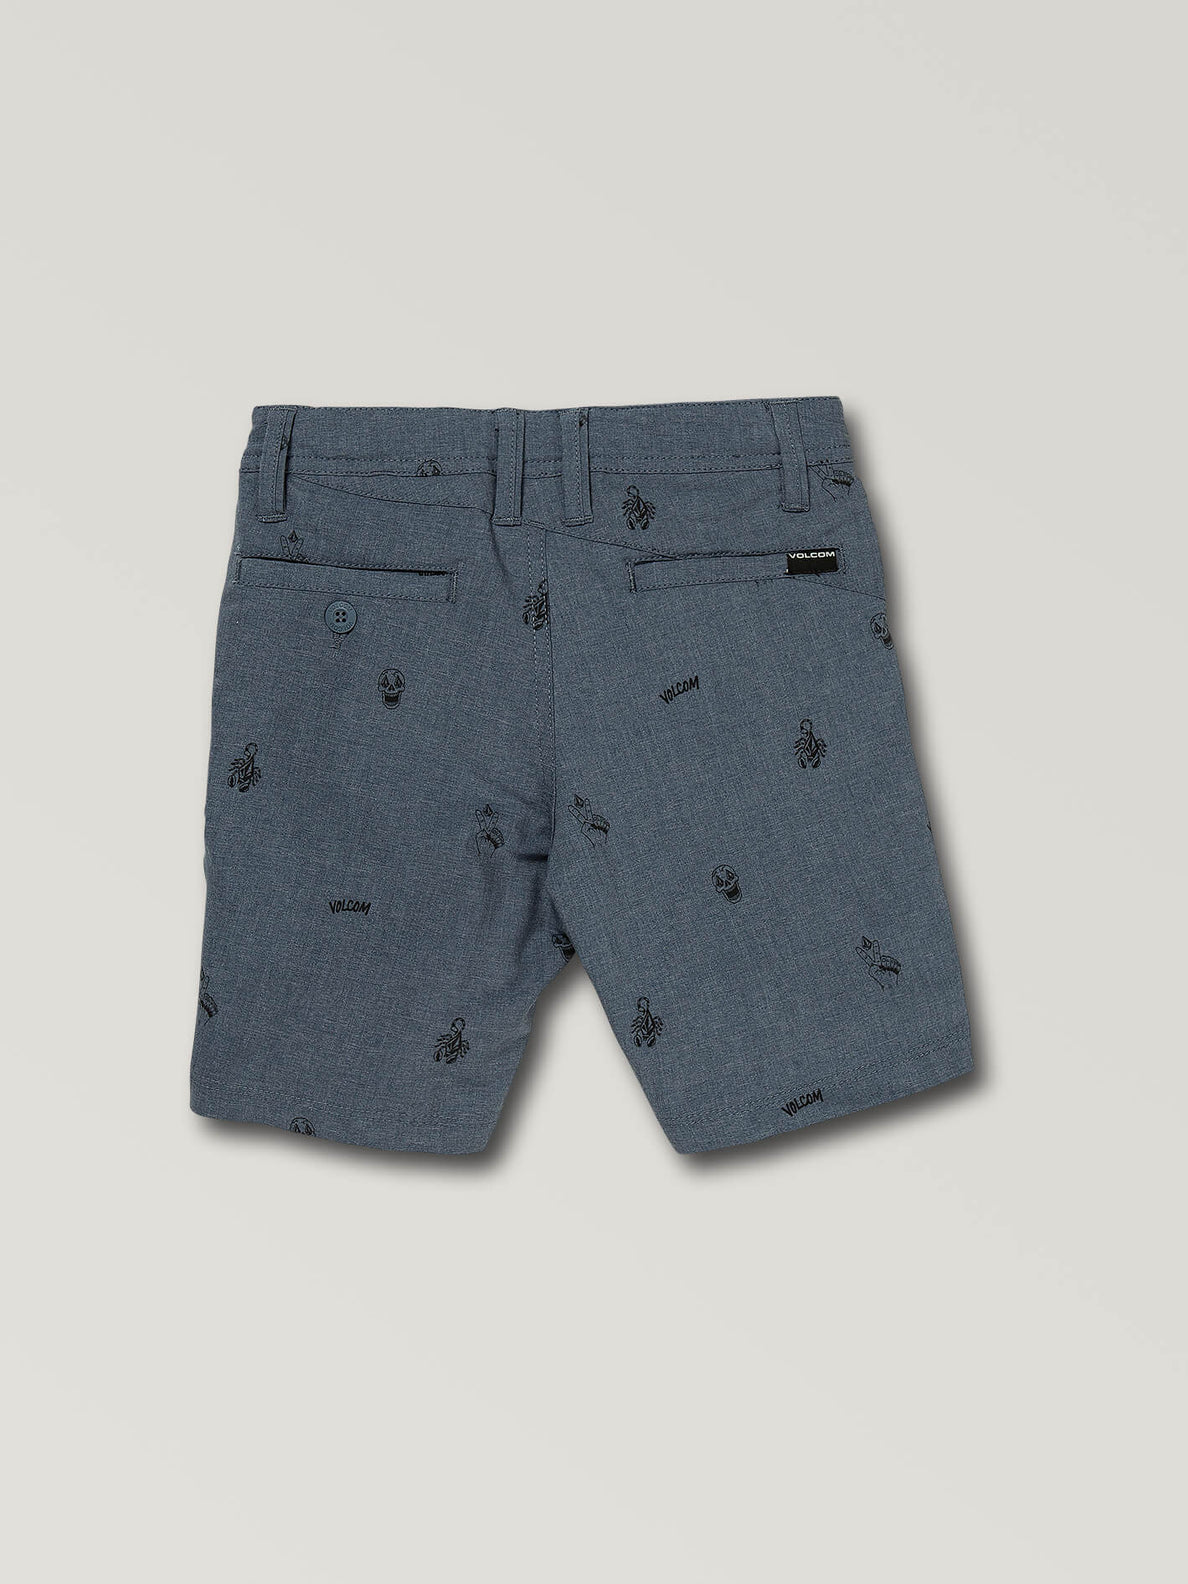 Little Boys Frickin Surf N' Turf Printed Hybrid Shorts In Deep Blue, Back View